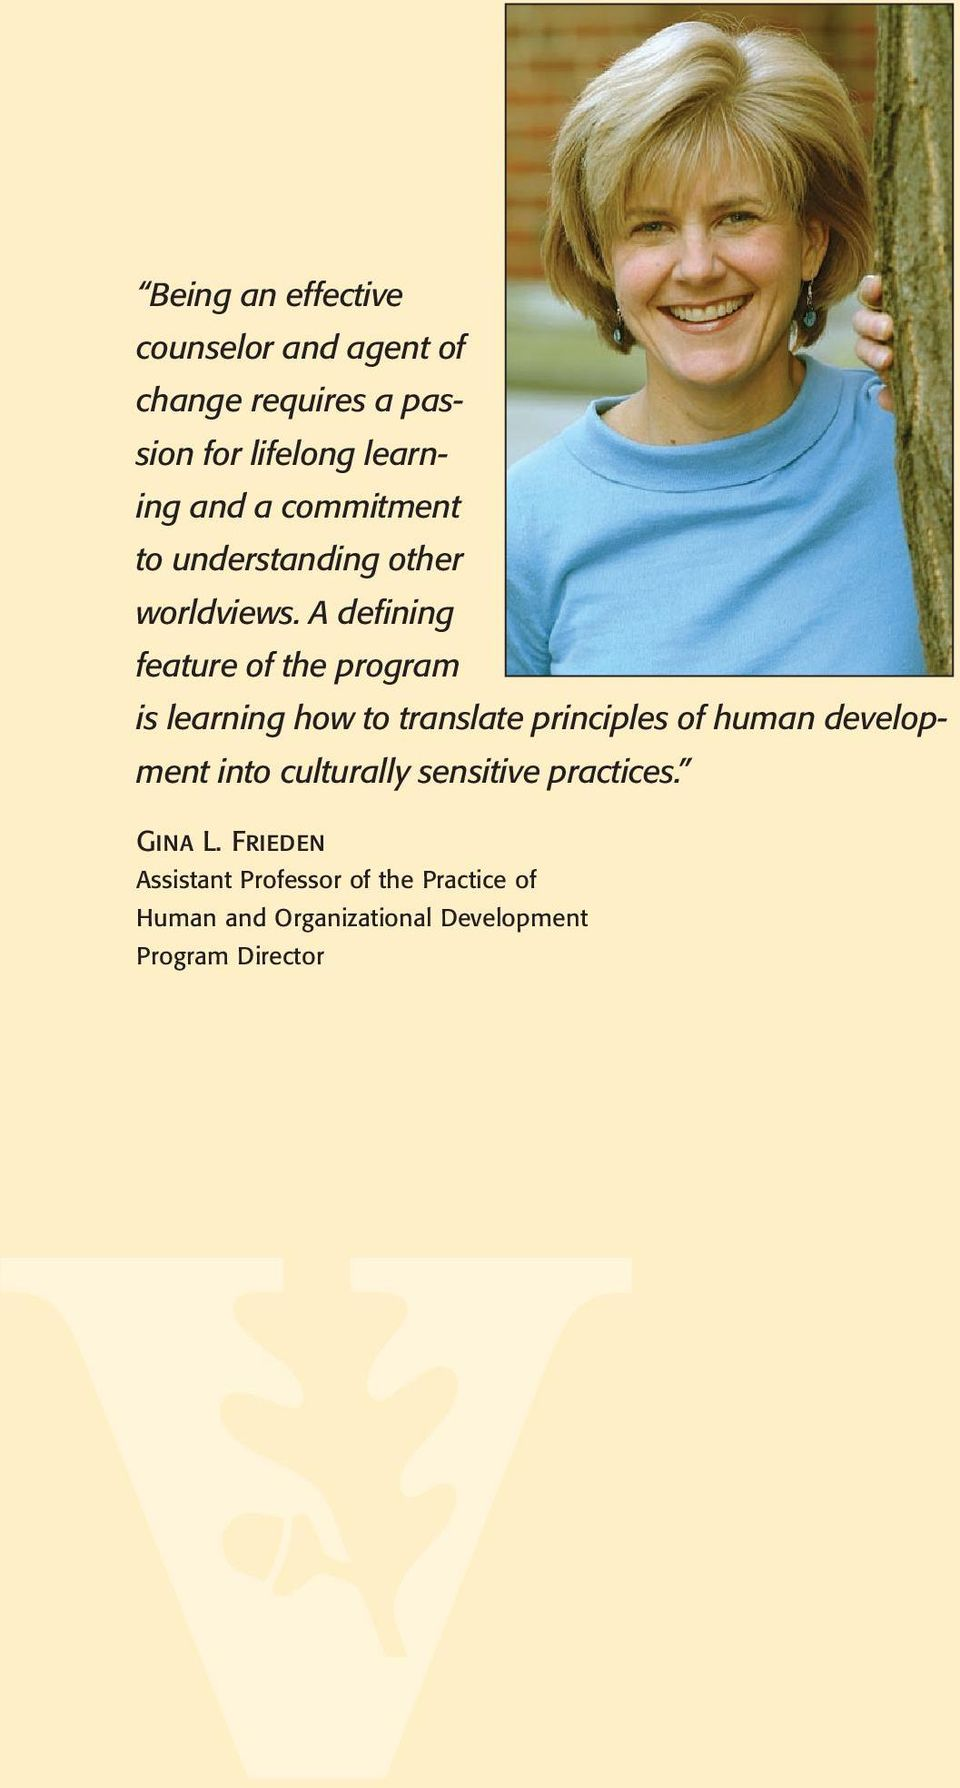 A defining feature of the program is learning how to translate principles of human development